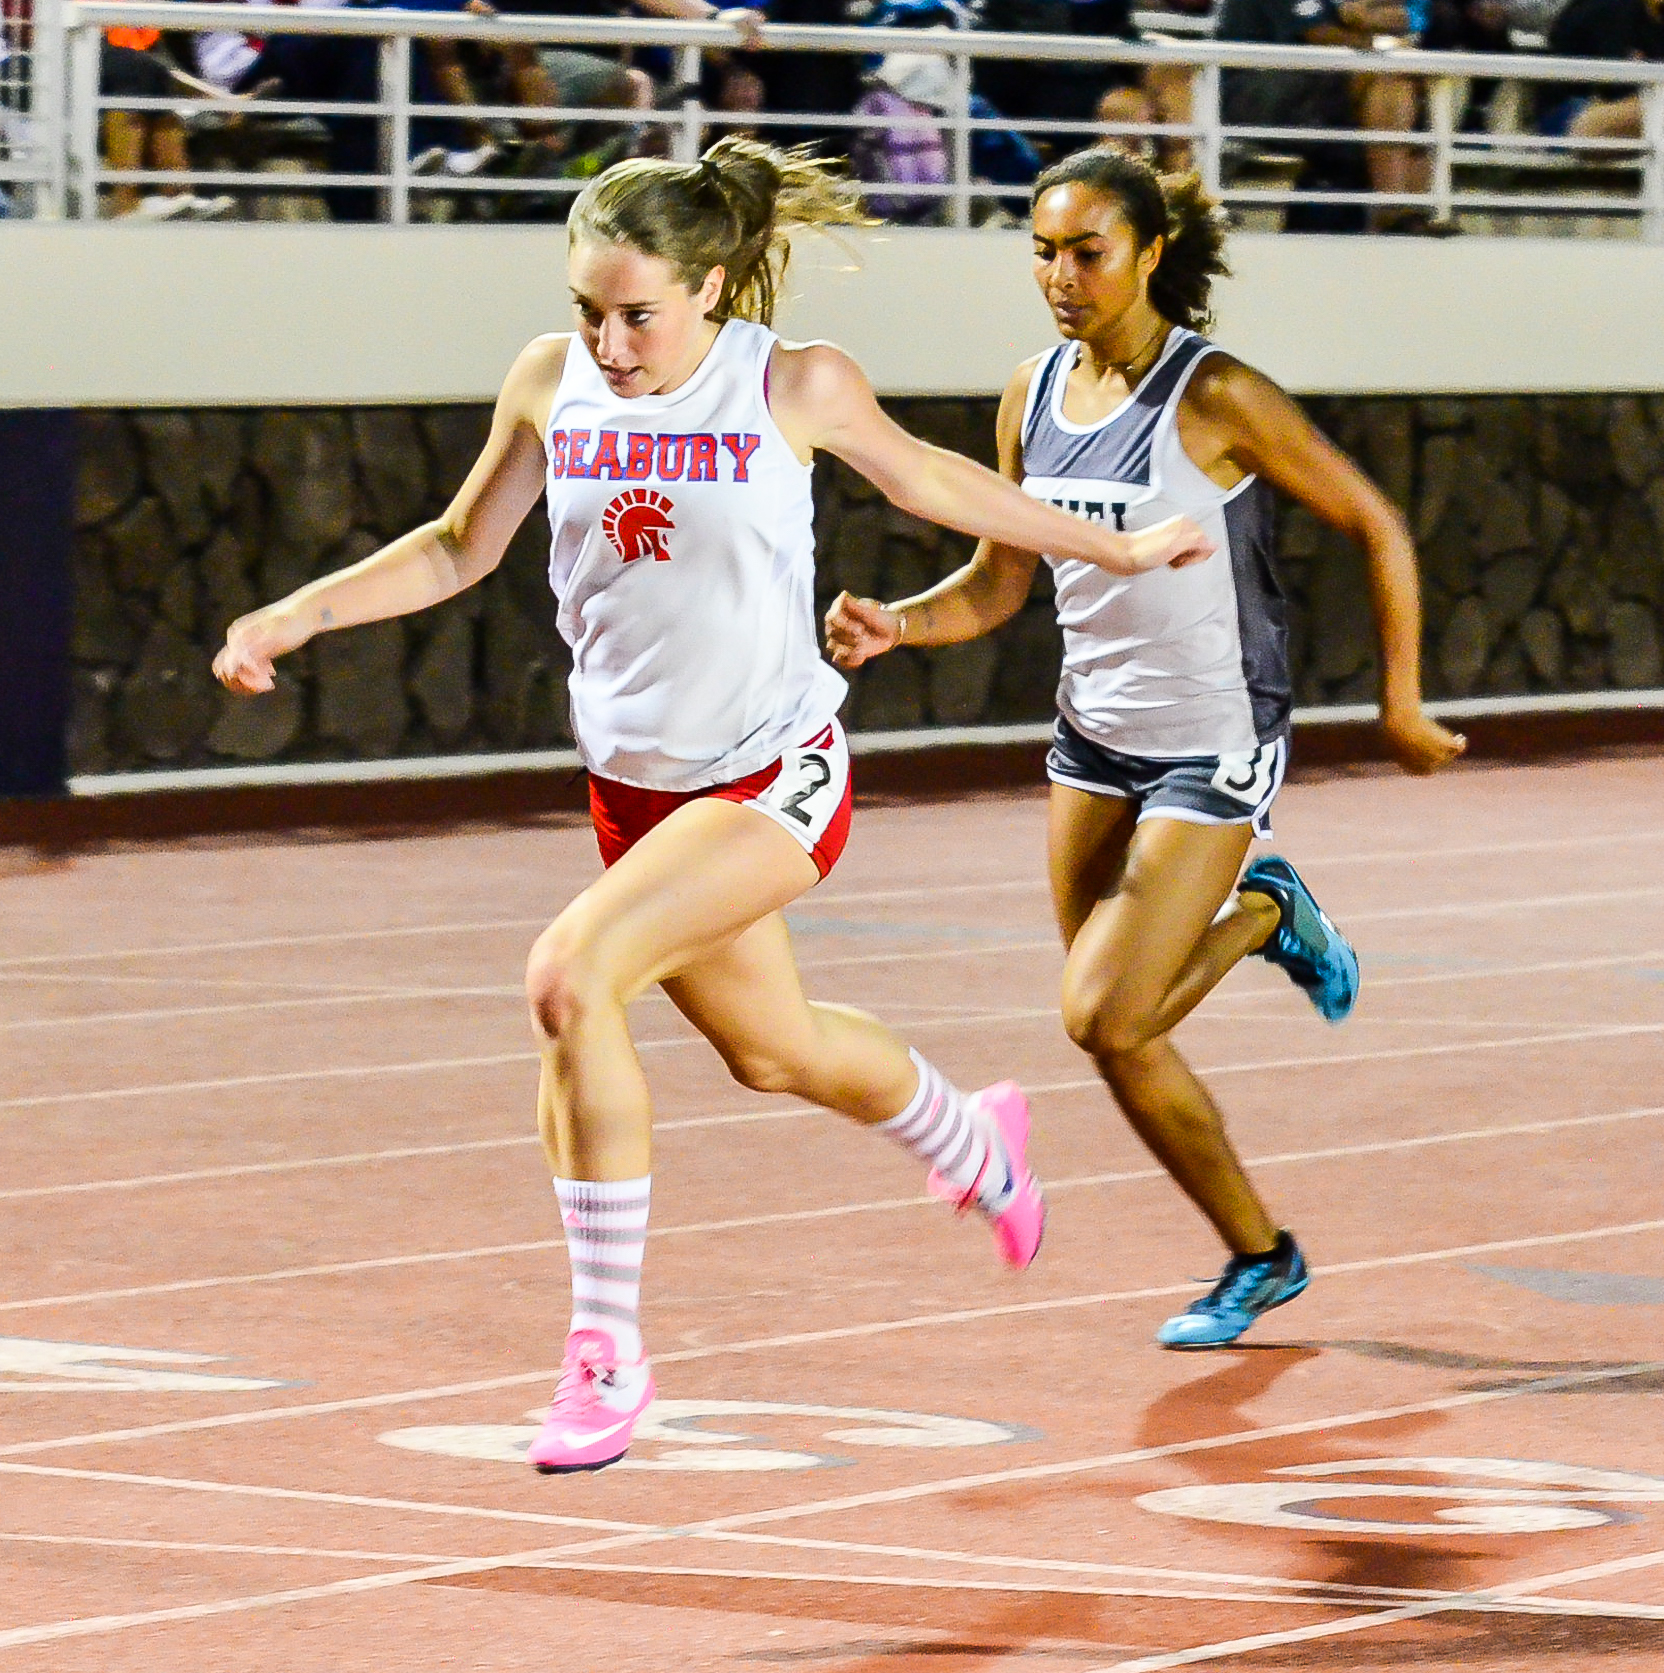 Seabury Hall's Claire Borthwick finished fifth in the girls 200-meter dash. Photo by Rodney S. Yap.